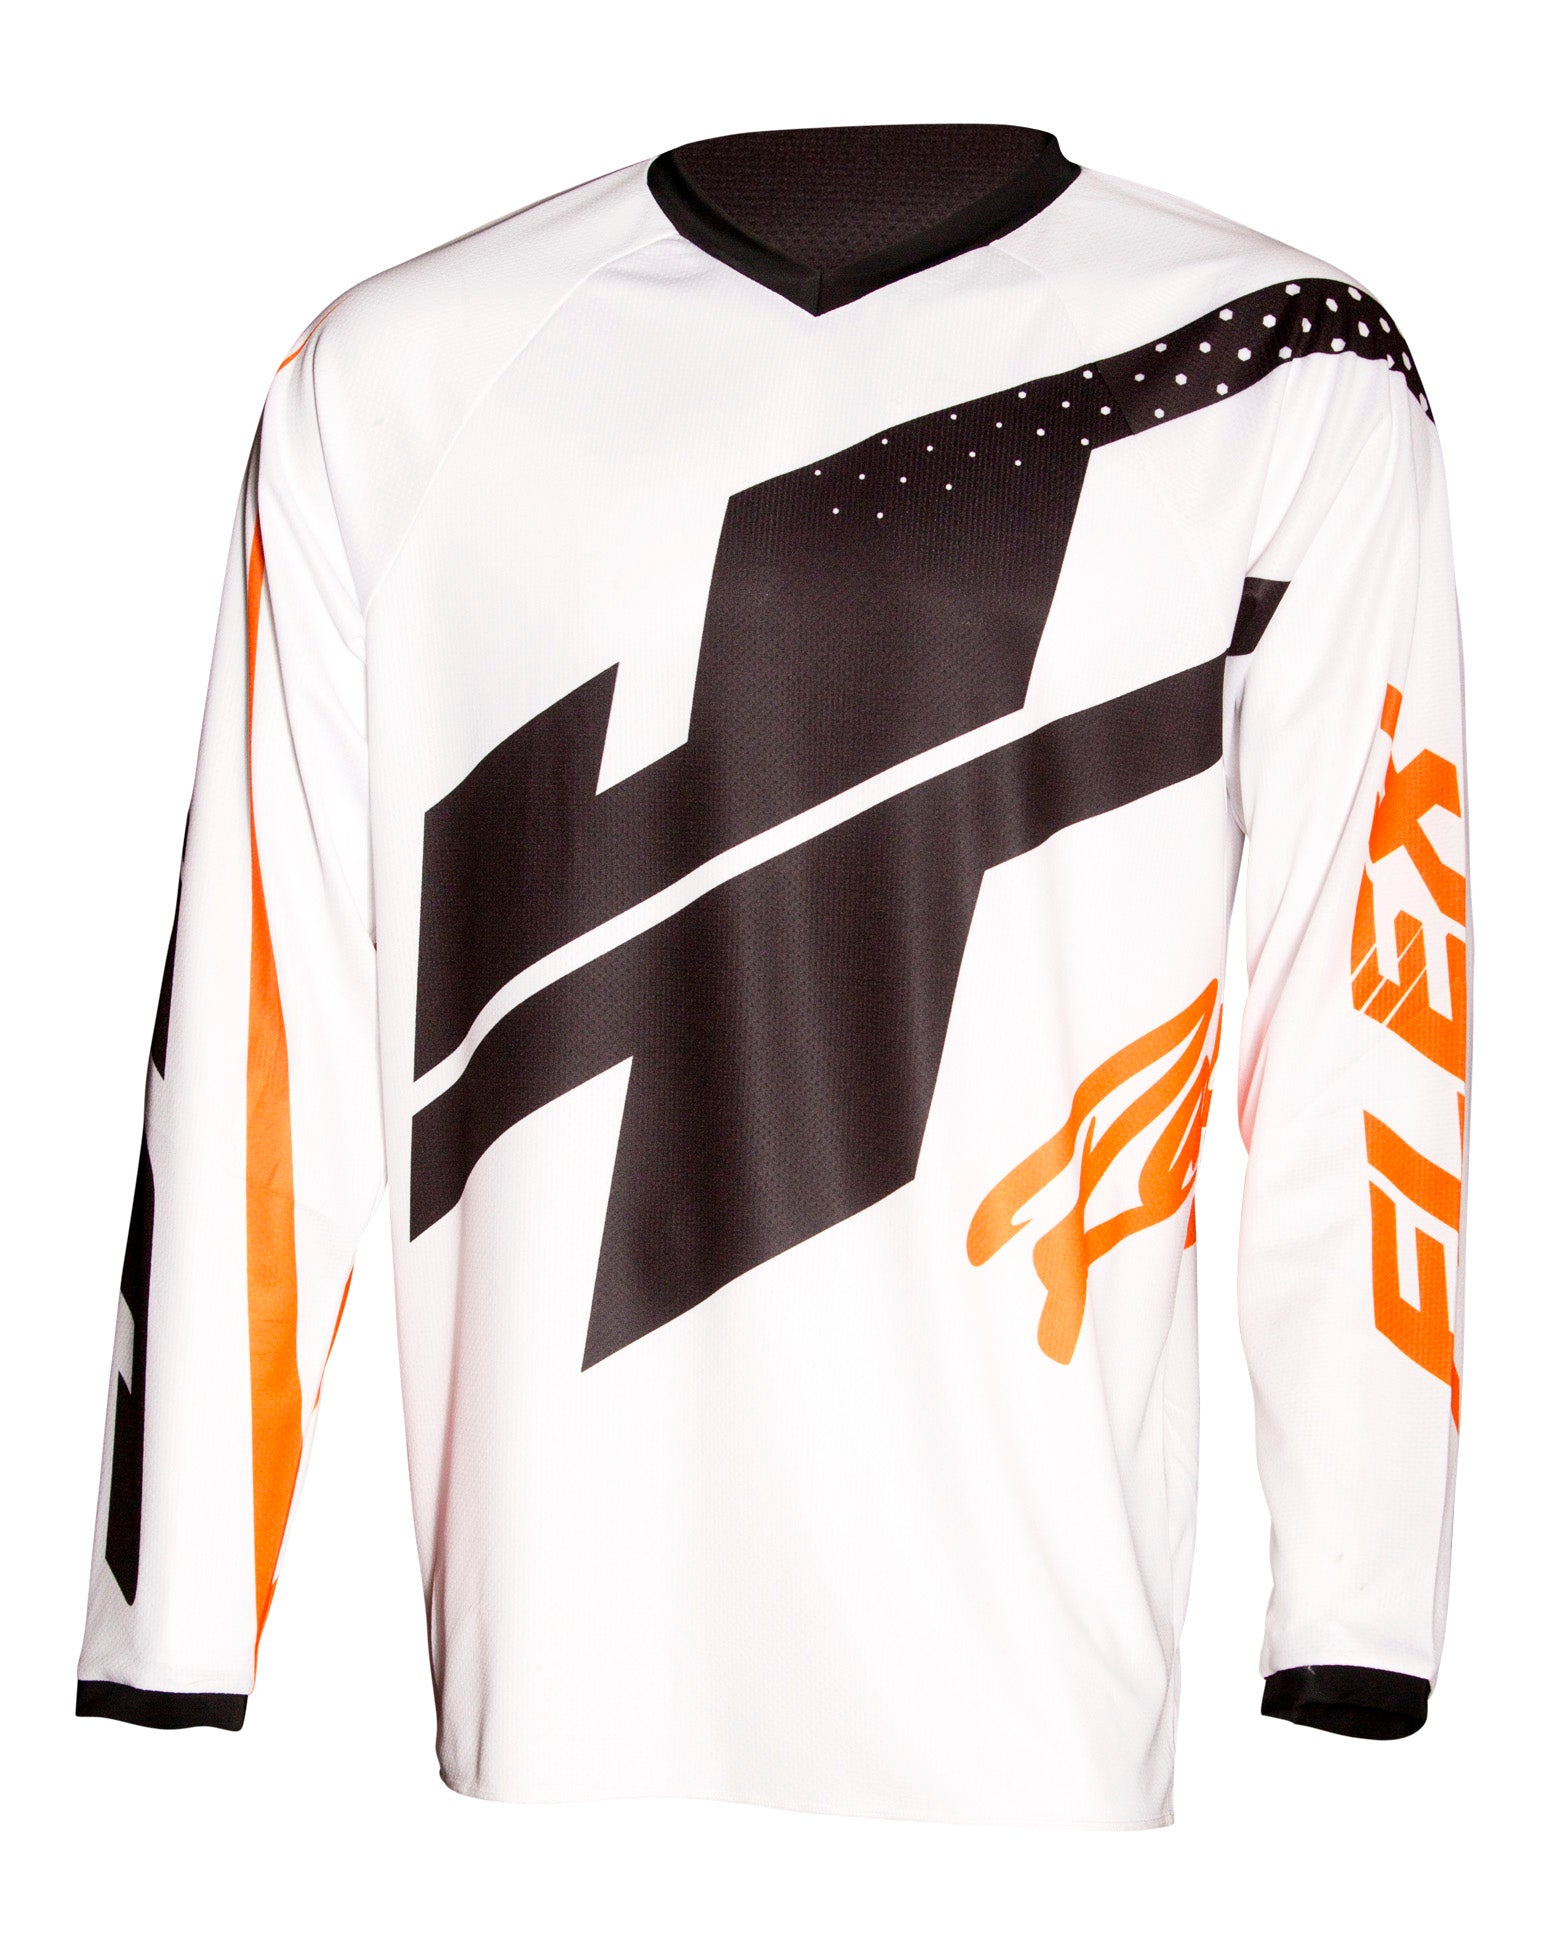 JT RACING USA-Flex Hi-Lo Jersey, White/Orange/Black